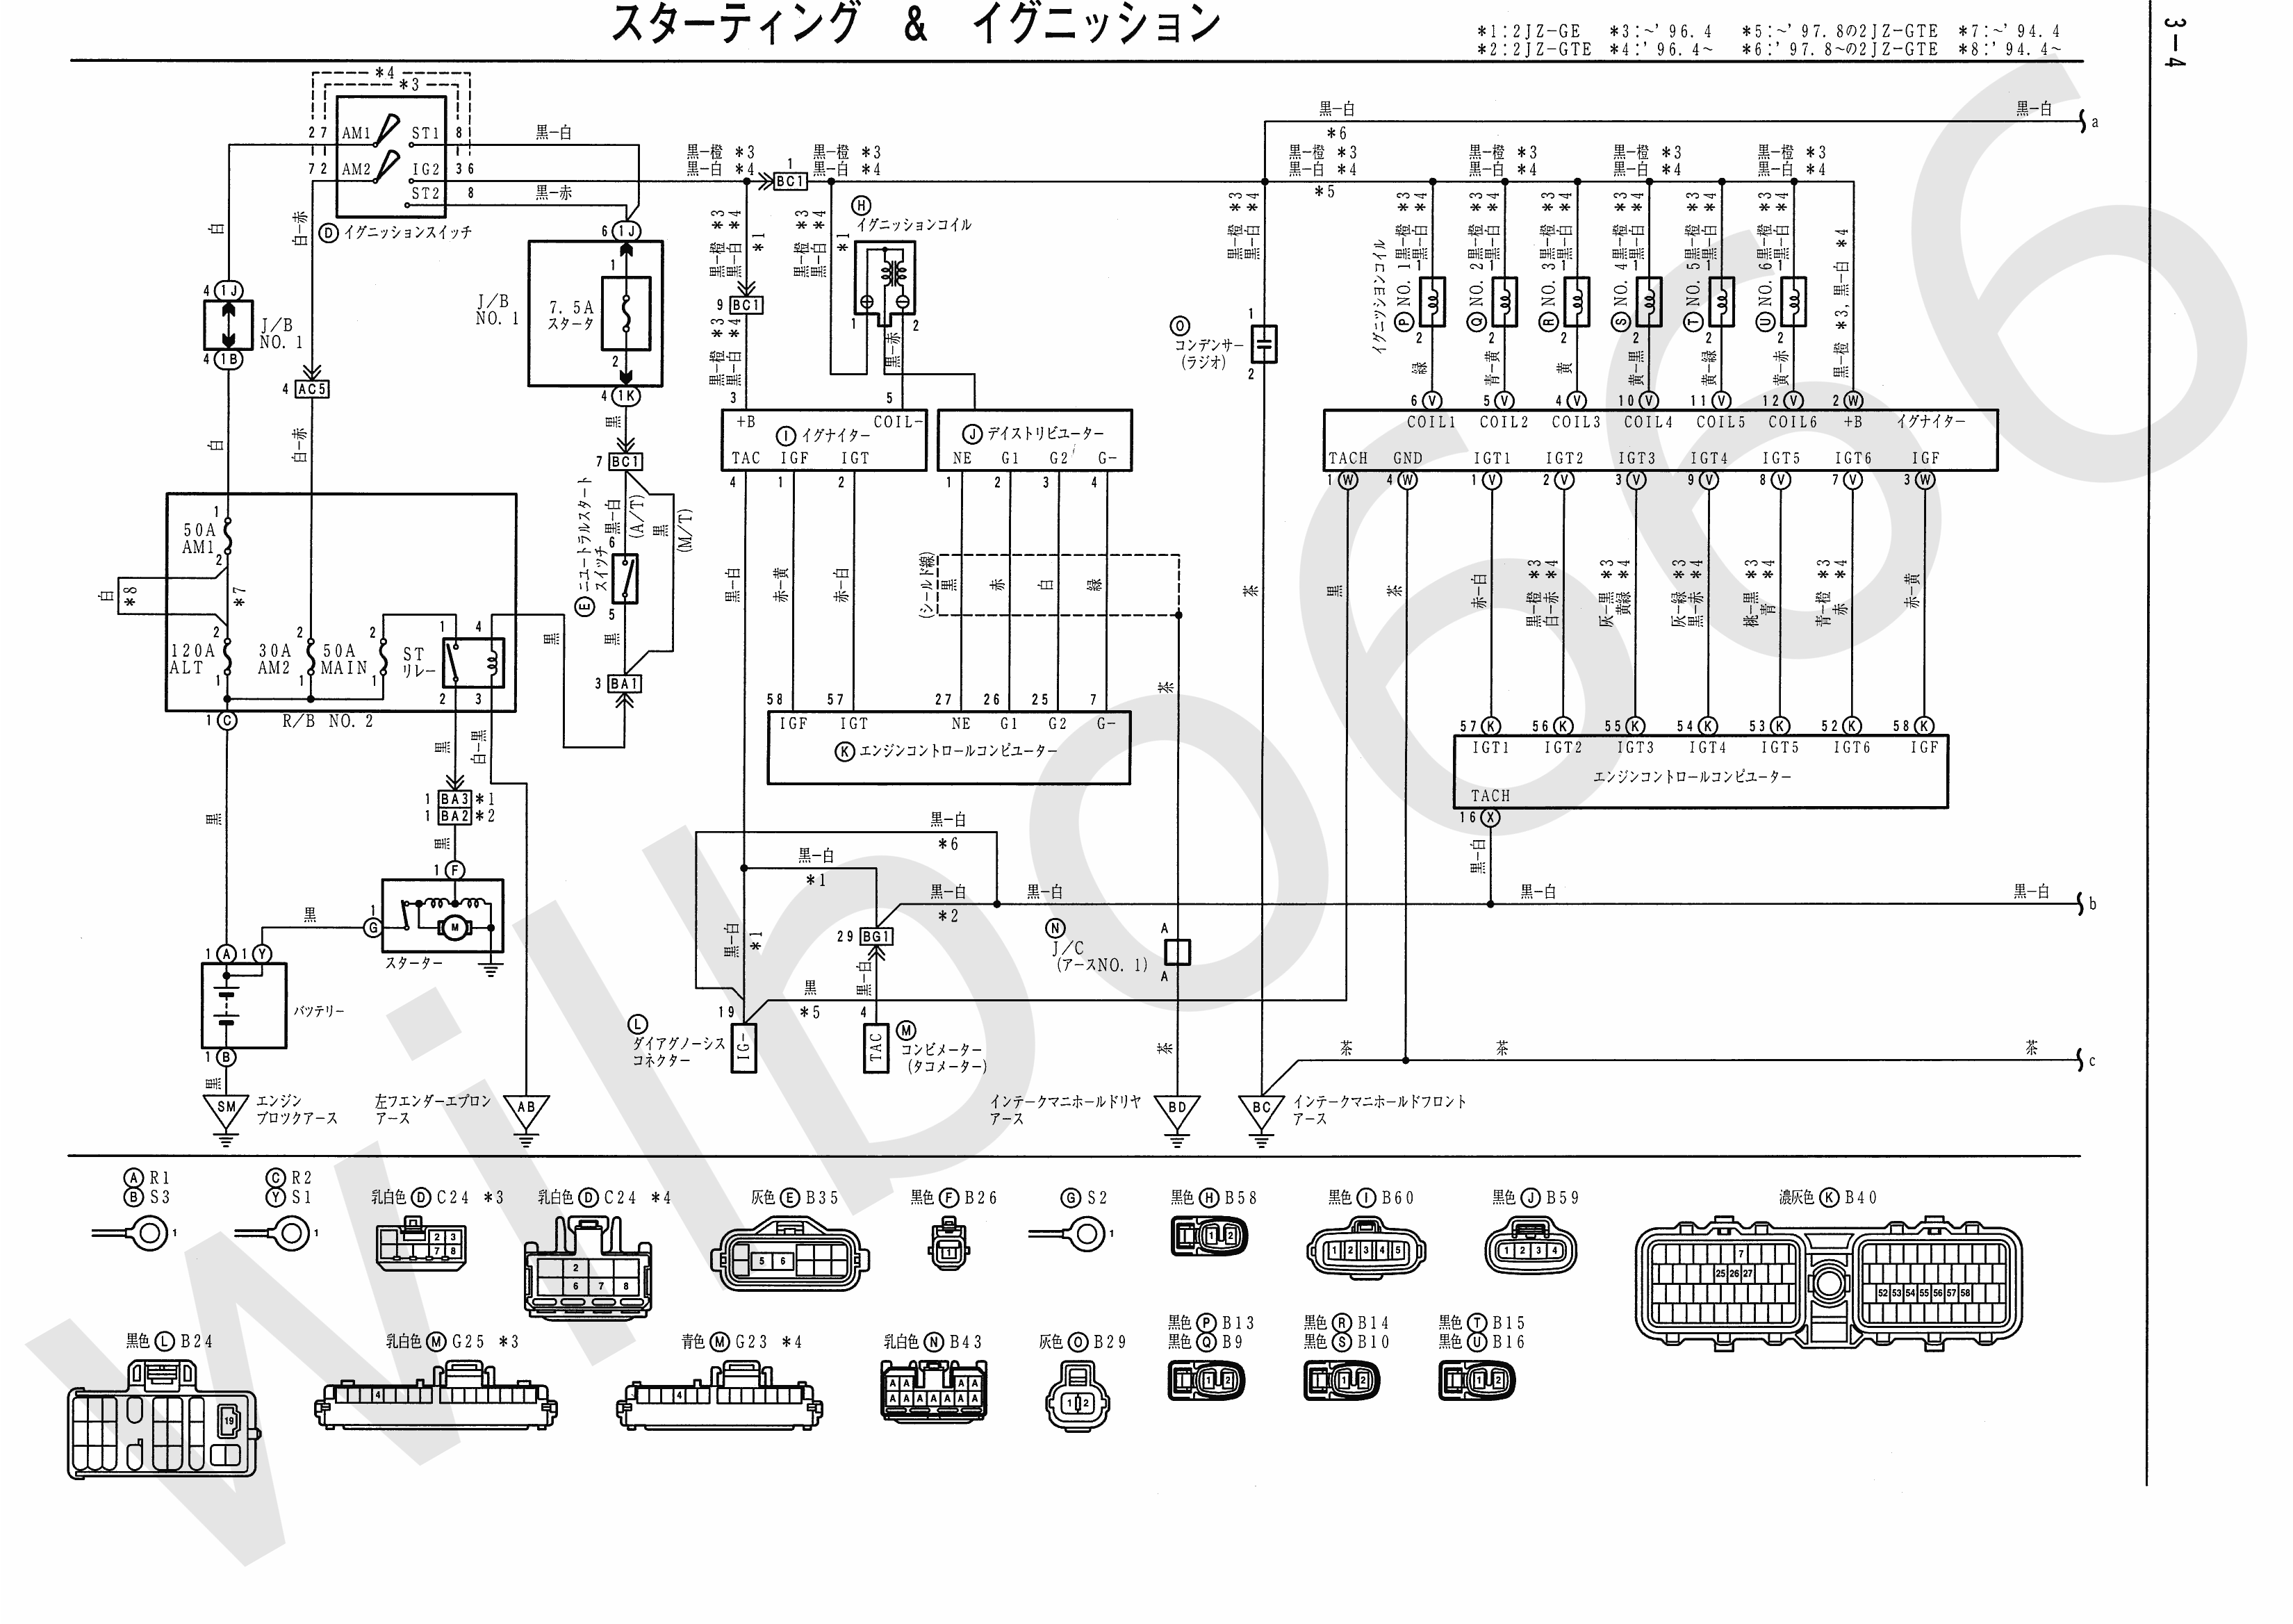 satchwell room thermostats thermostat pinout on satchwell. JZA80 Electrical Wiring Diagram 6742505 3 4?resize\\\\\\\\\\\\\\